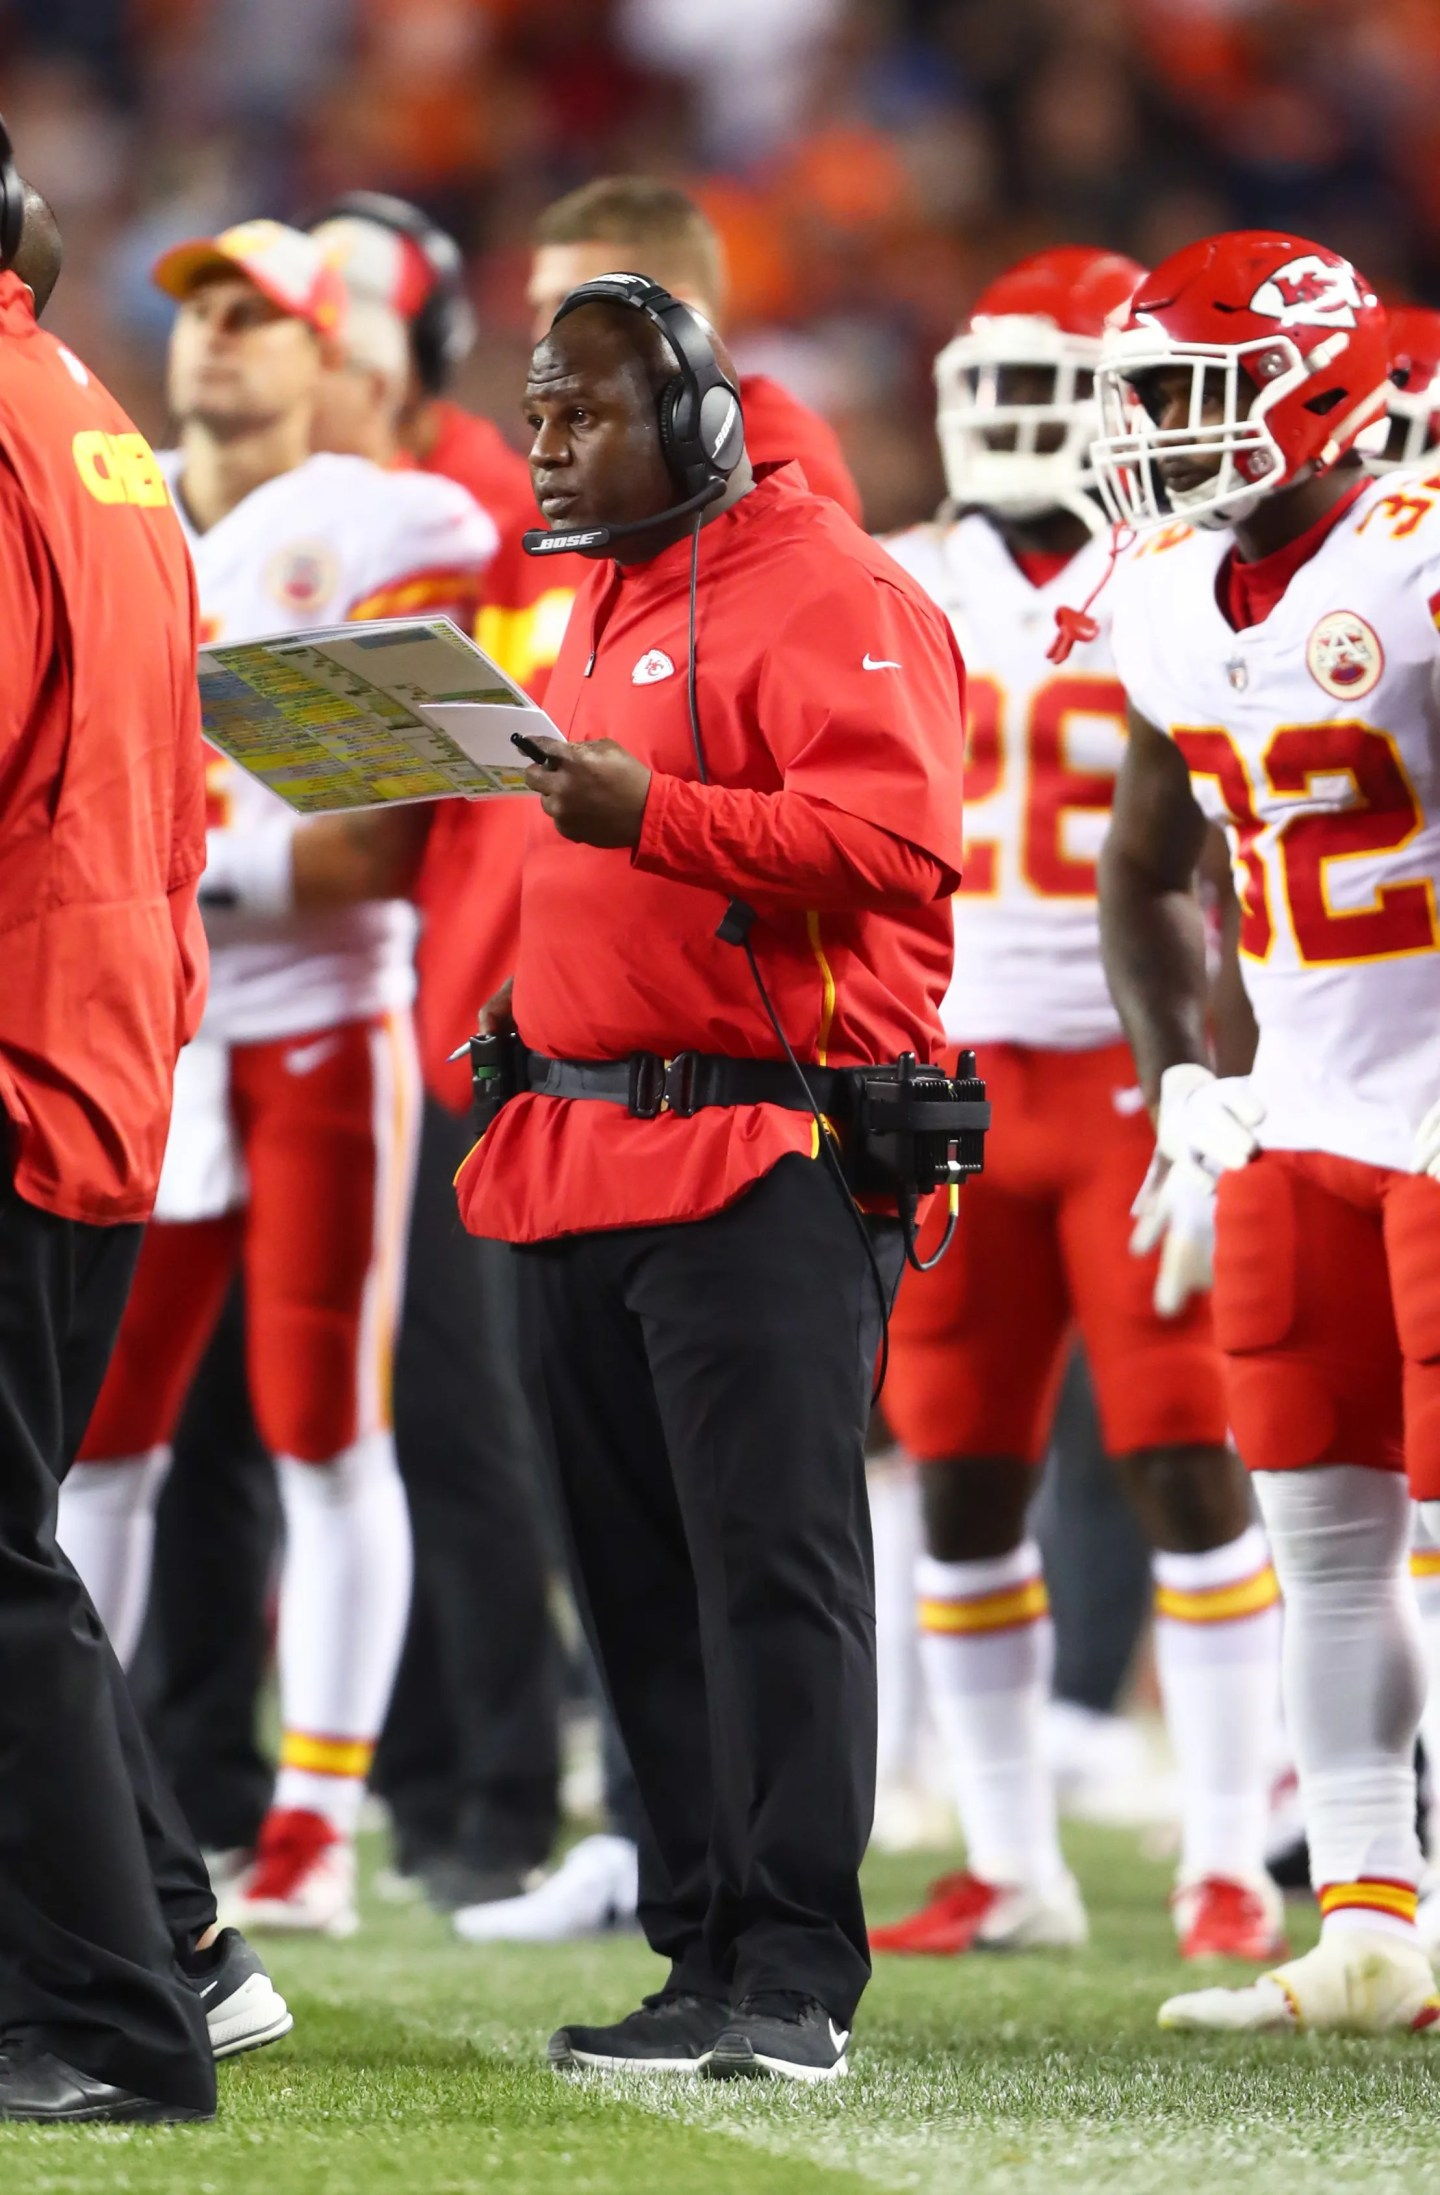 Eric Bieniemy, the Chiefs' offensive coordinator, is one of the hot coaching candidates in the NFL.